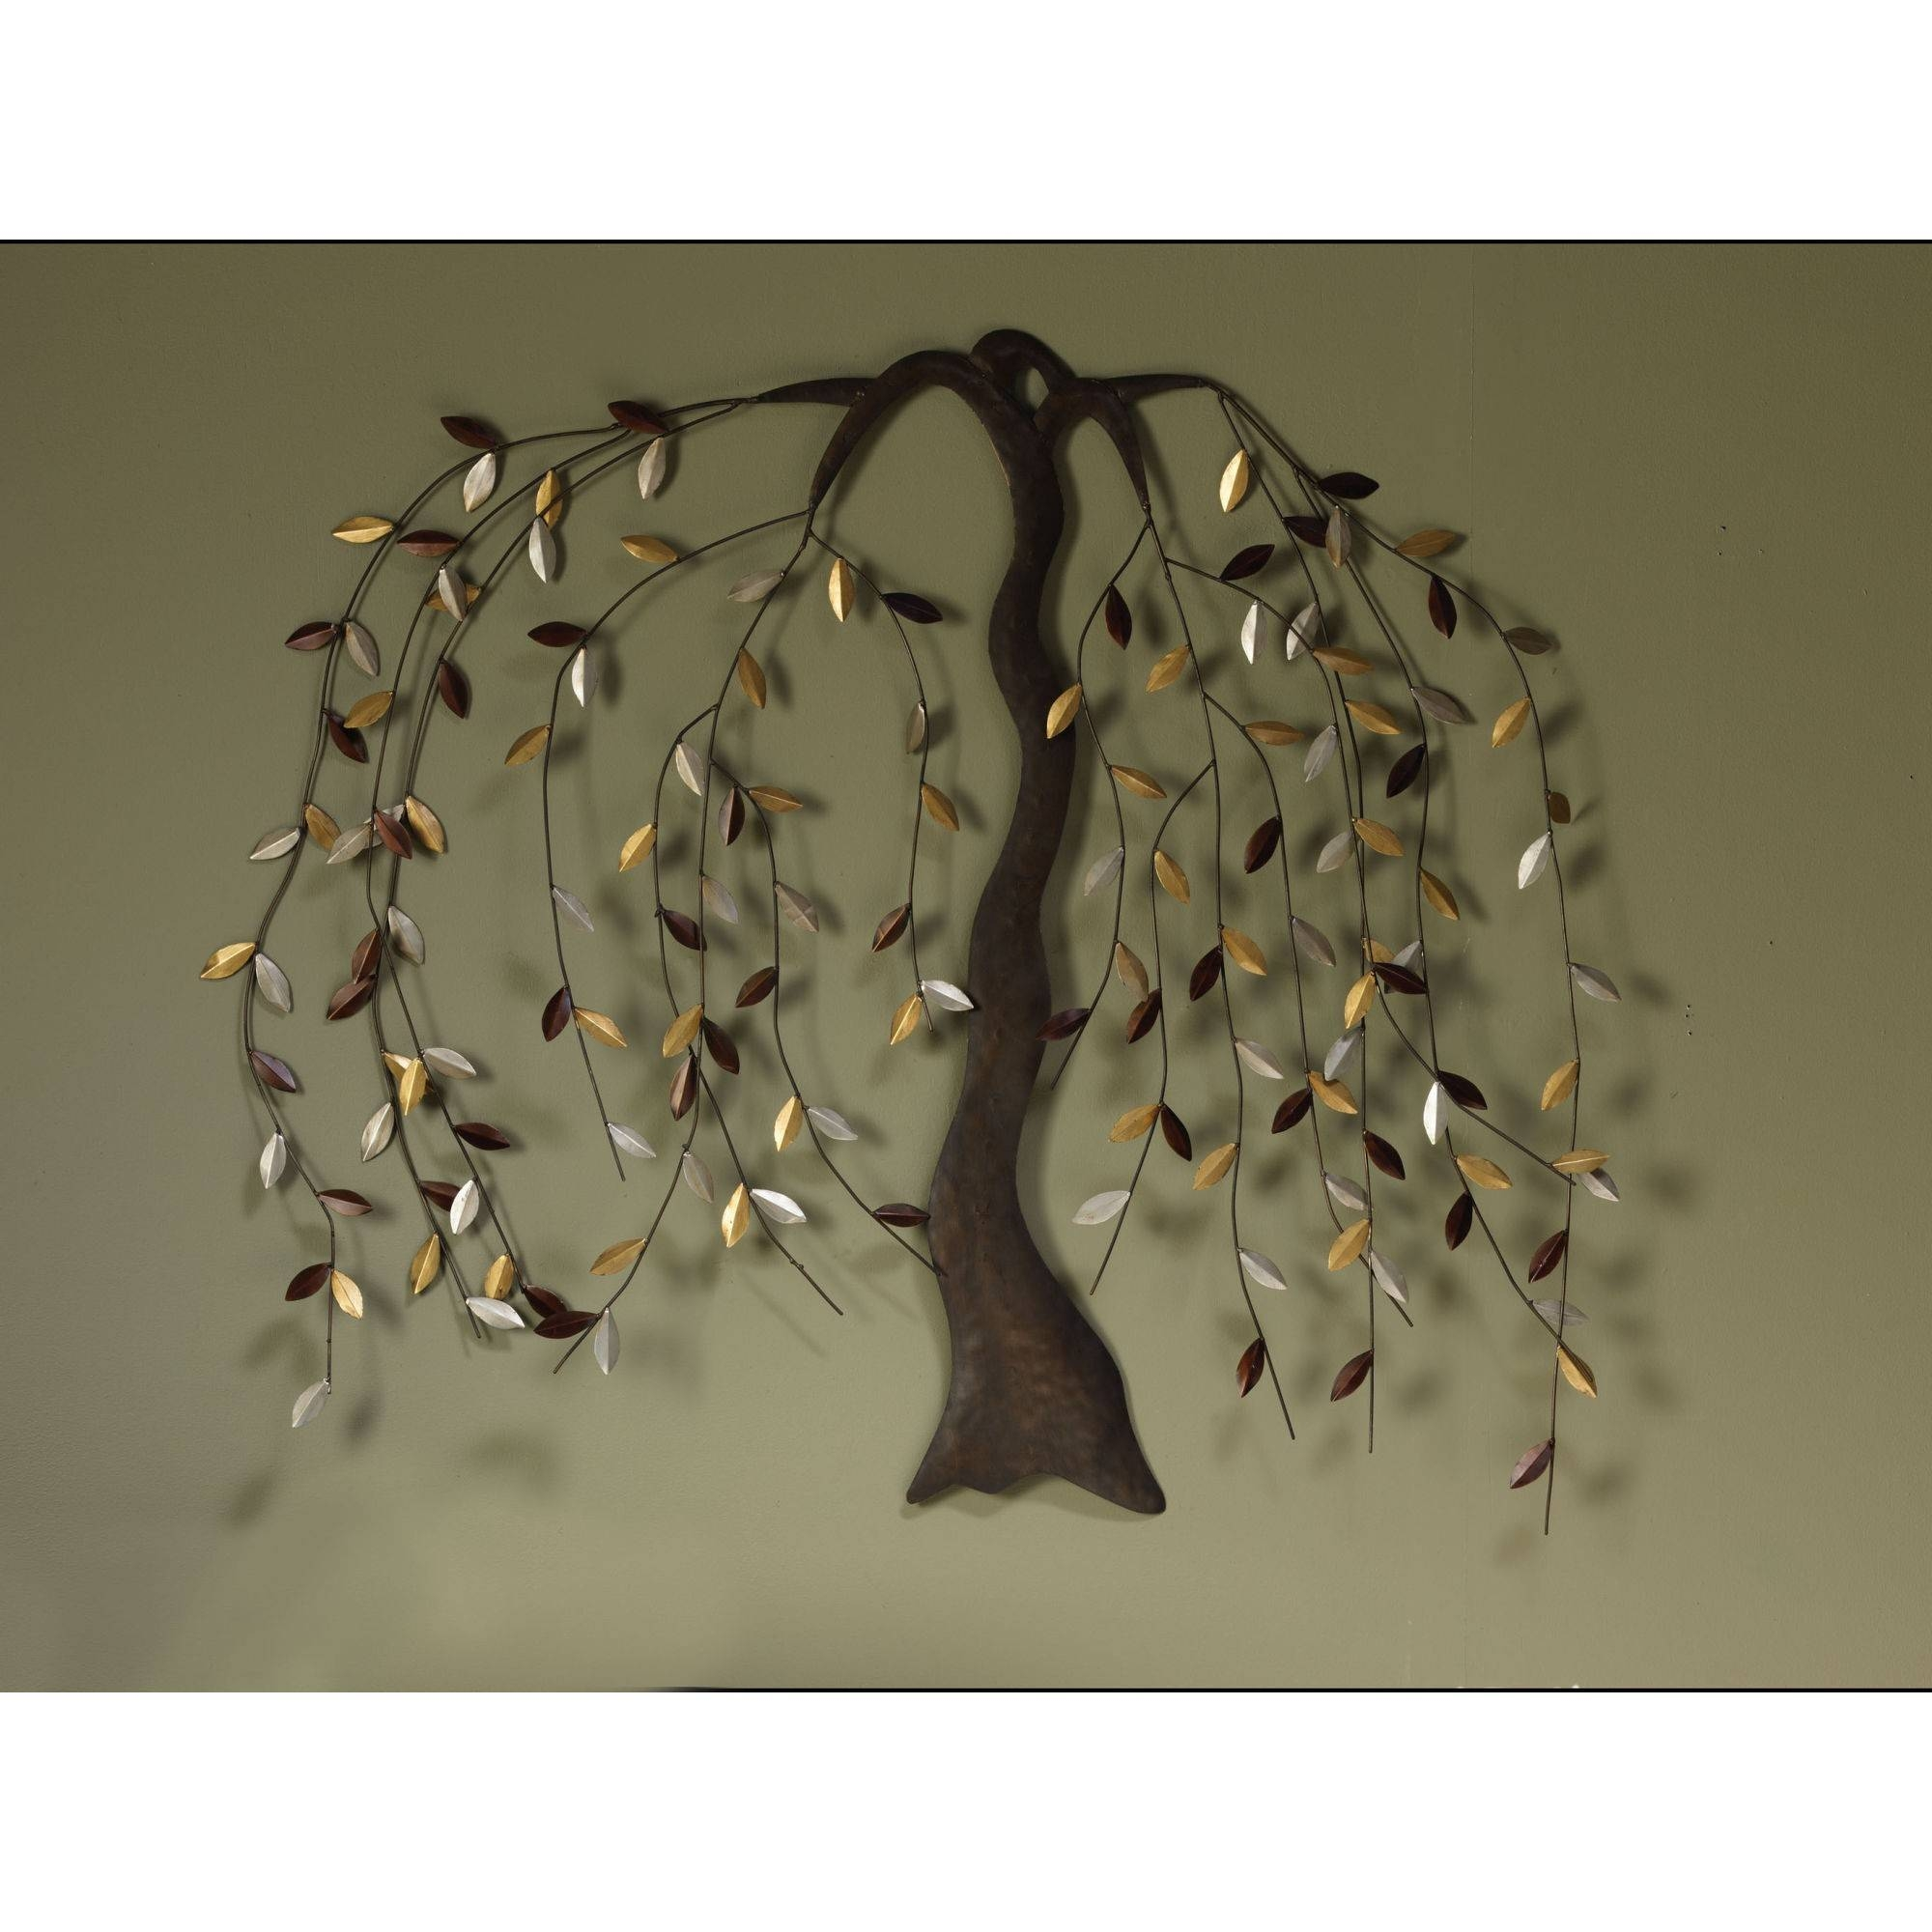 Exciting Natural Tree Of Life Metal Wall Art Decor Sculpture With Regard To 2017 Large Metal Wall Art Sculptures (View 6 of 20)